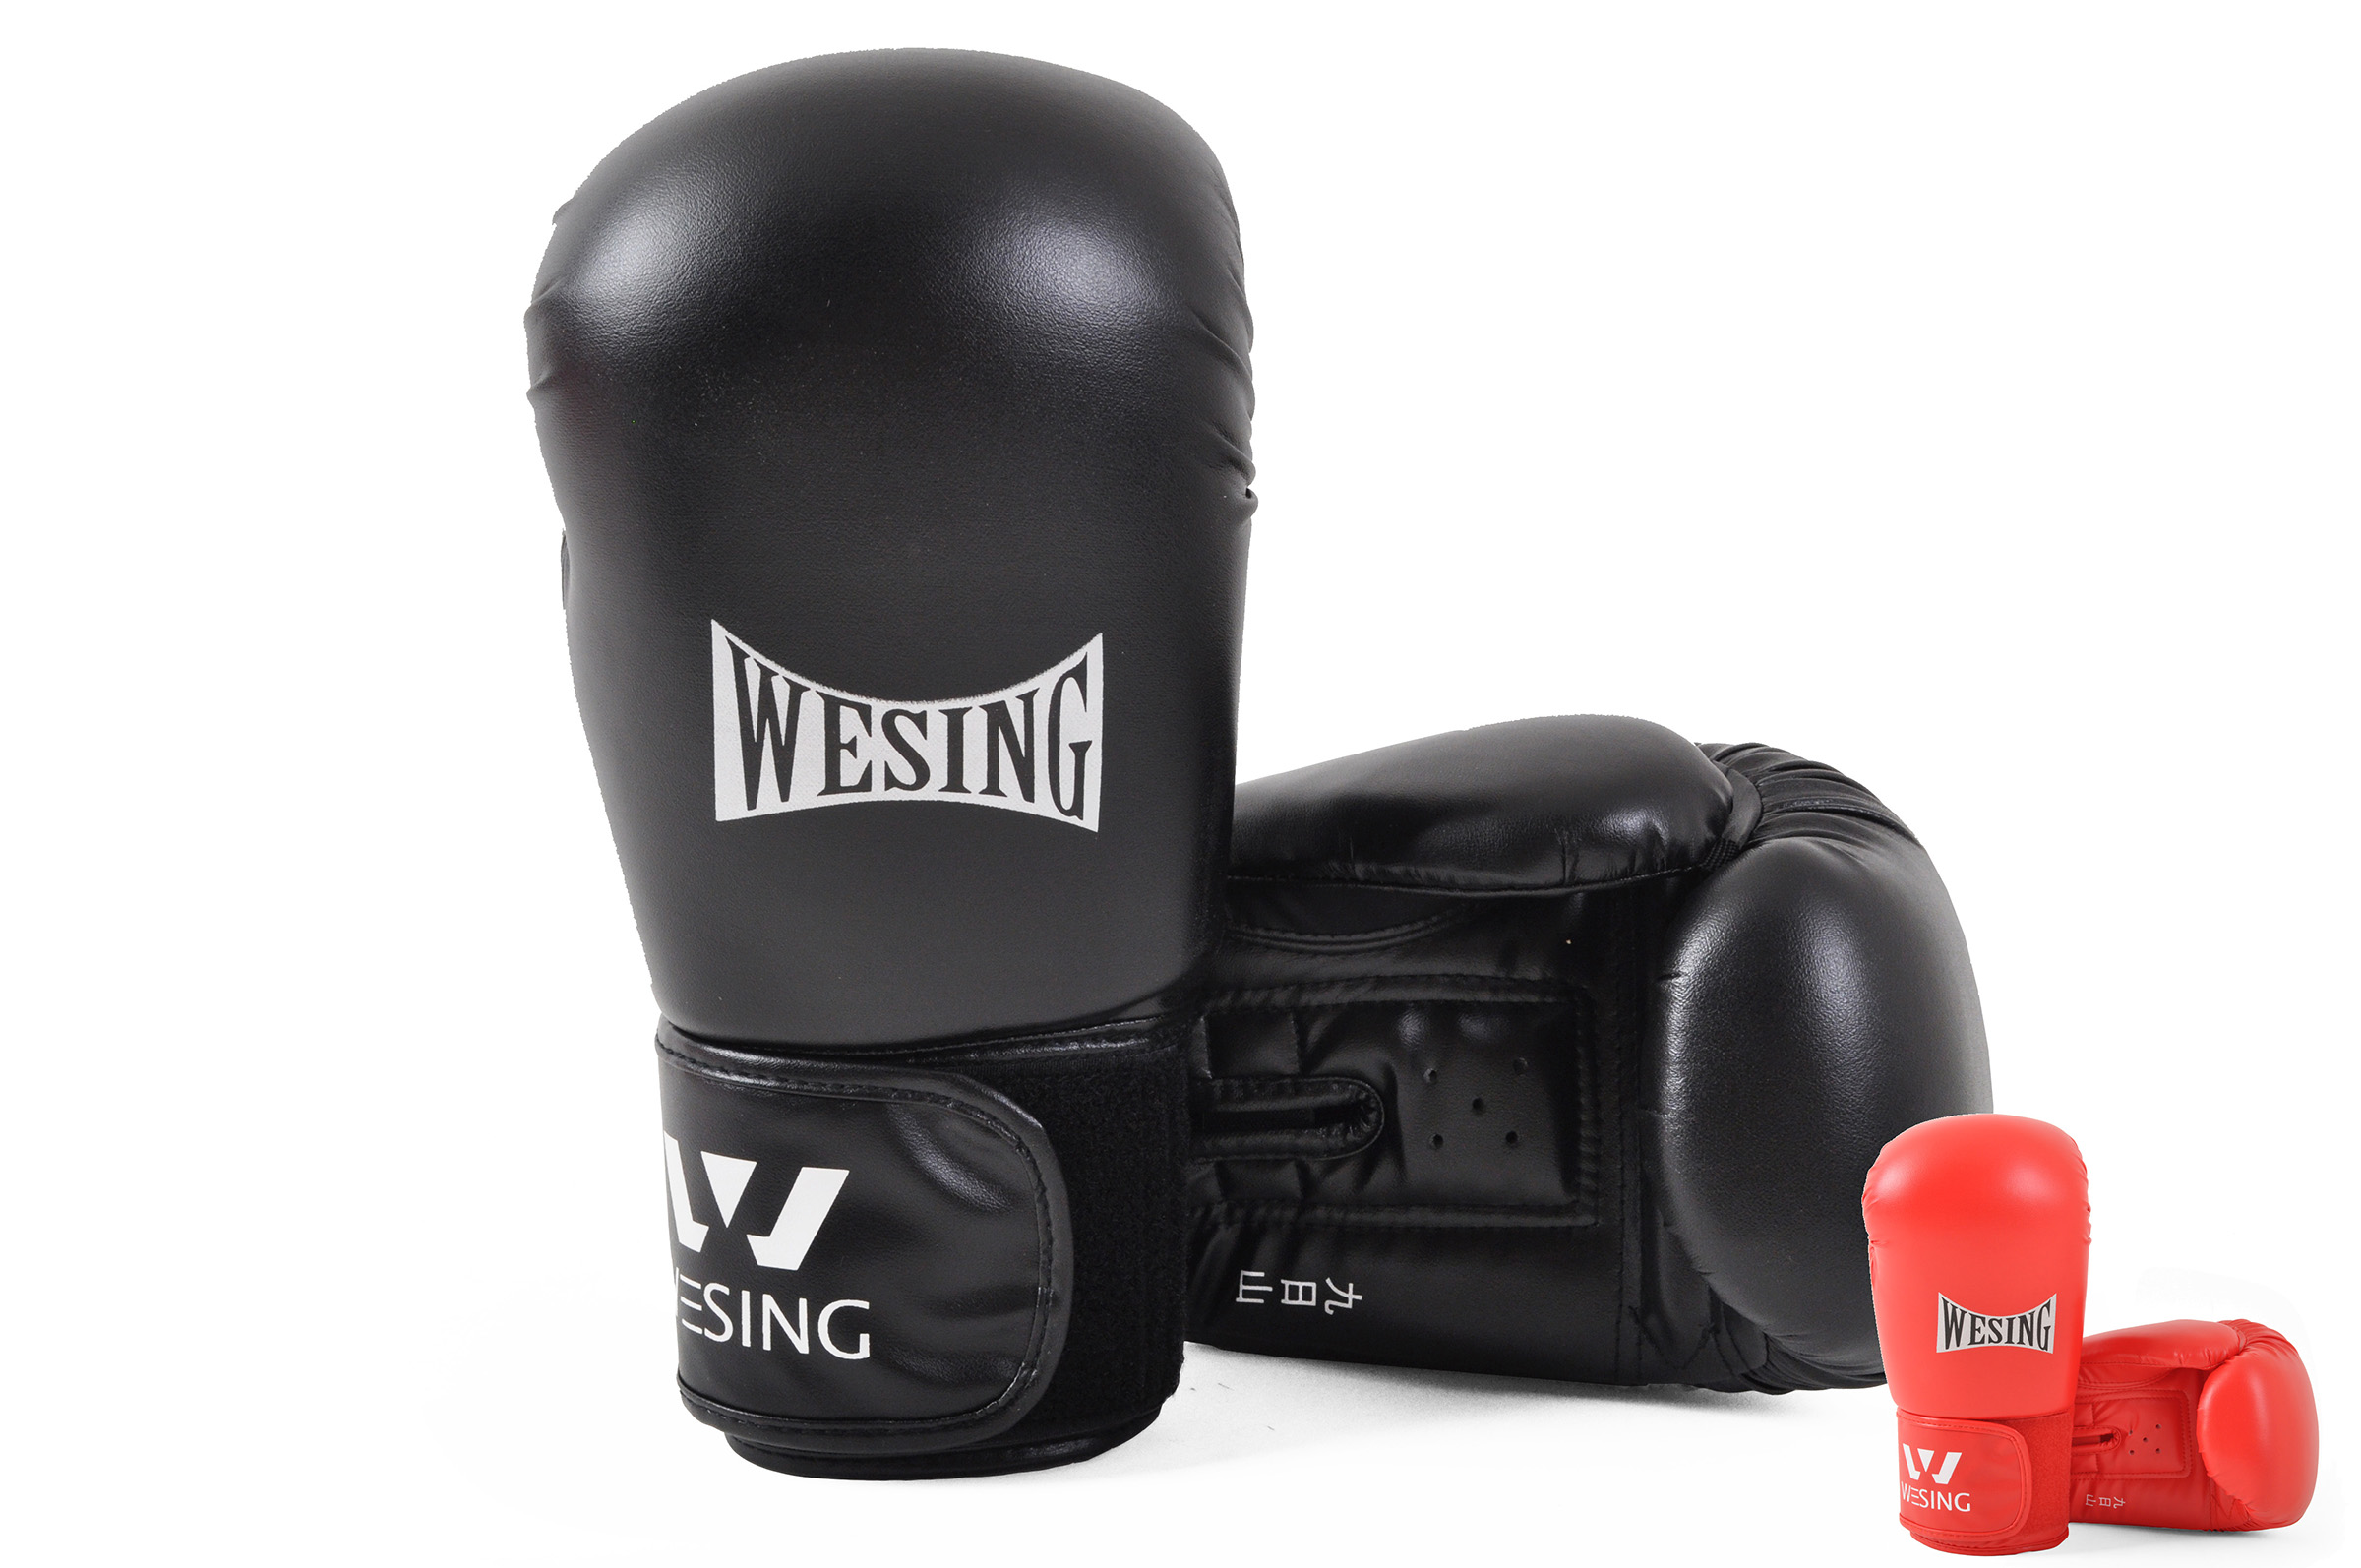 gants boxe chinoise sanda protection wesing pu. Black Bedroom Furniture Sets. Home Design Ideas